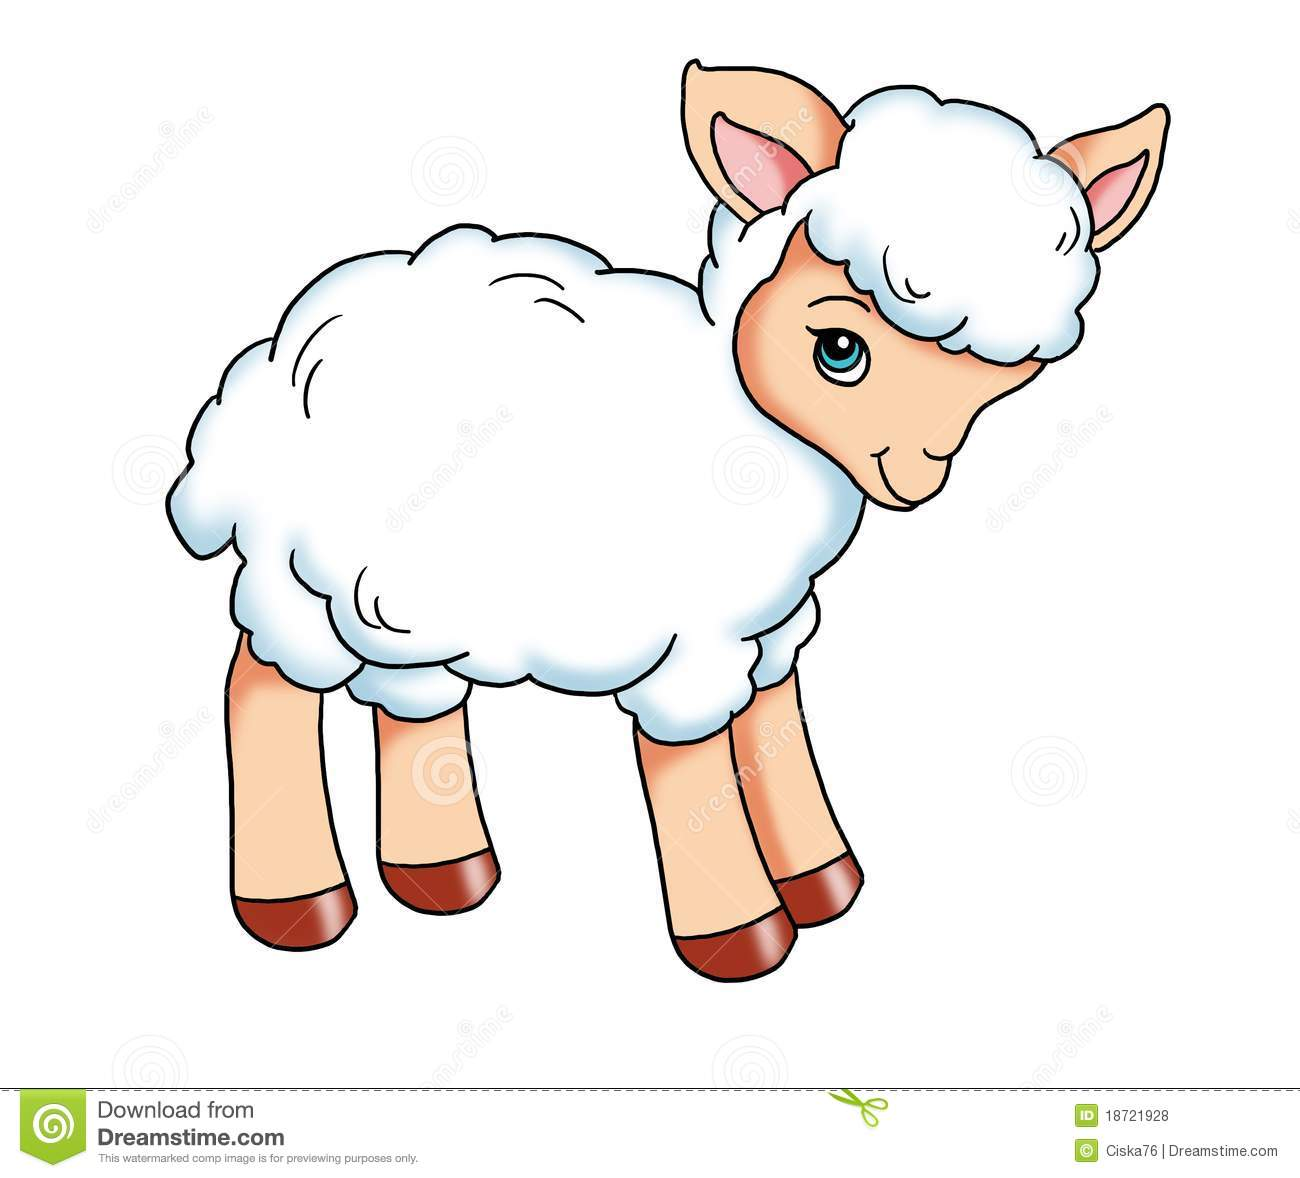 Lambs clipart - Clipground